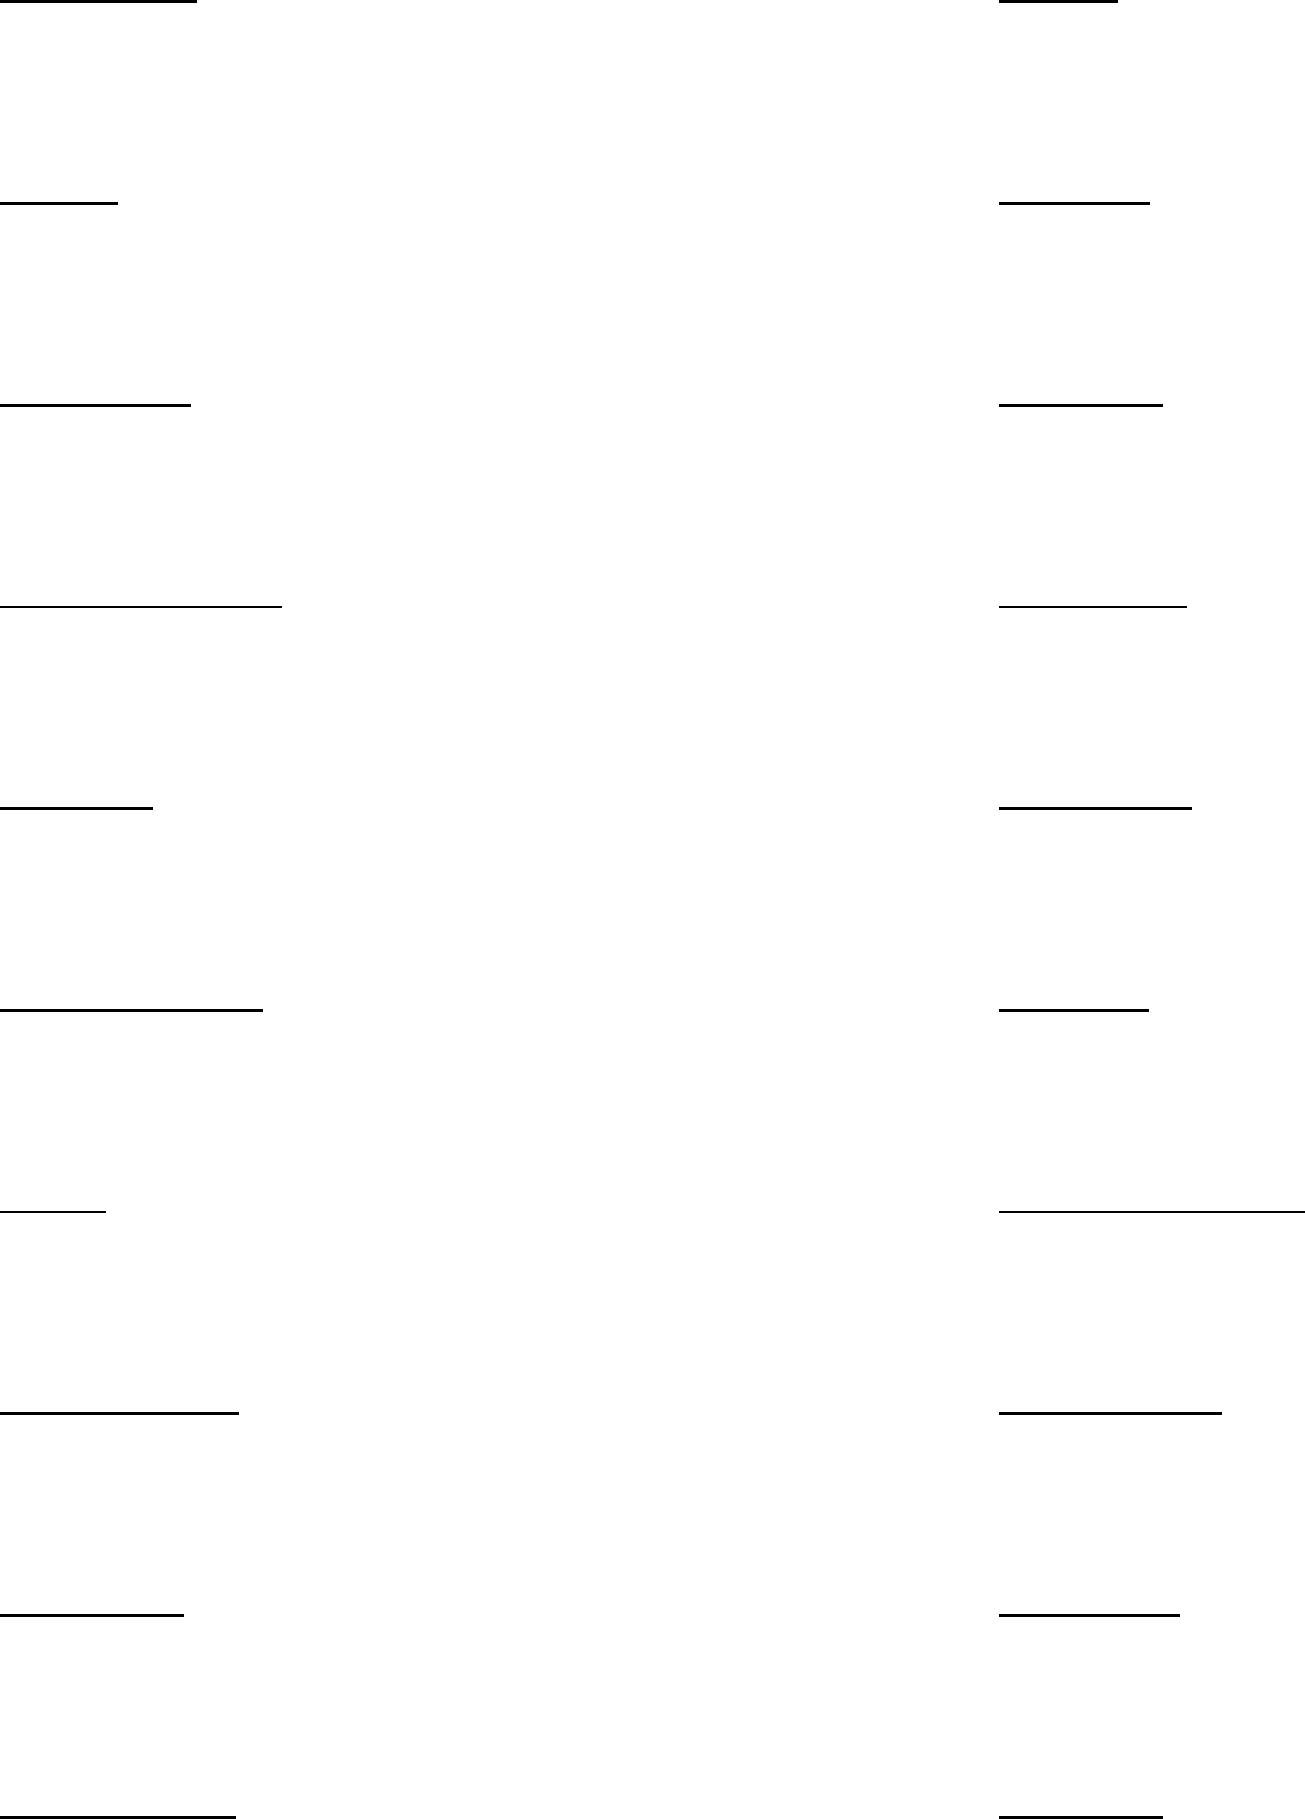 Roman Numerals Practice Worksheet Free Download